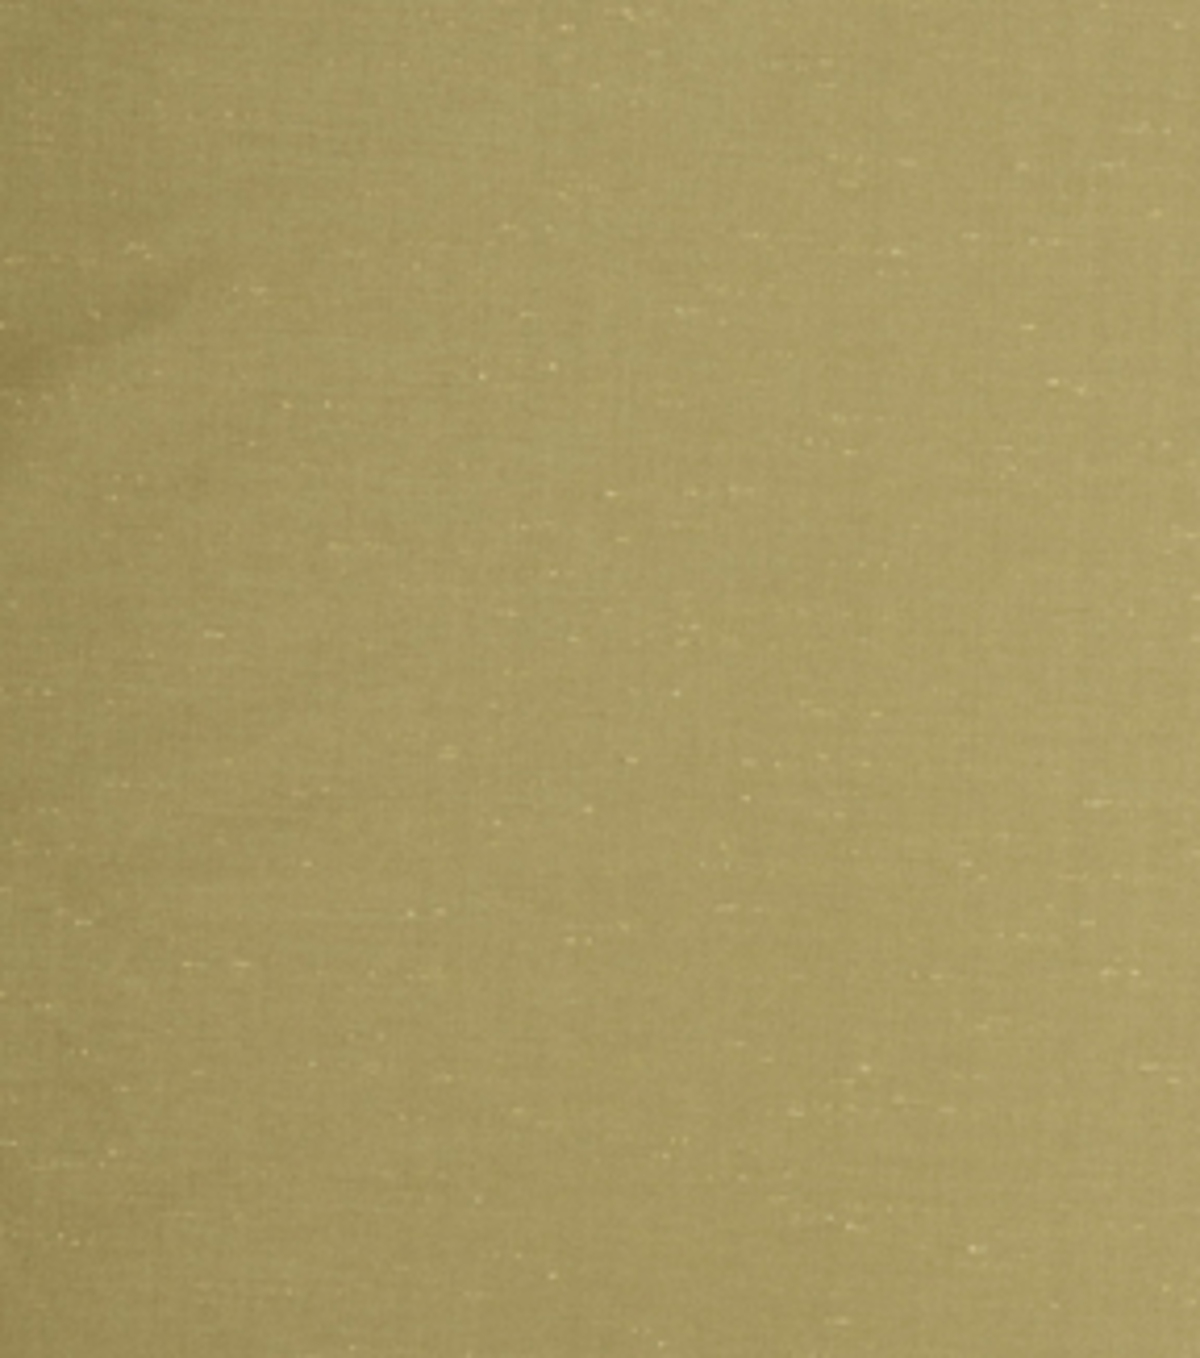 Home Decor 8\u0022x8\u0022 Fabric Swatch-Signature Series Airforce Willow